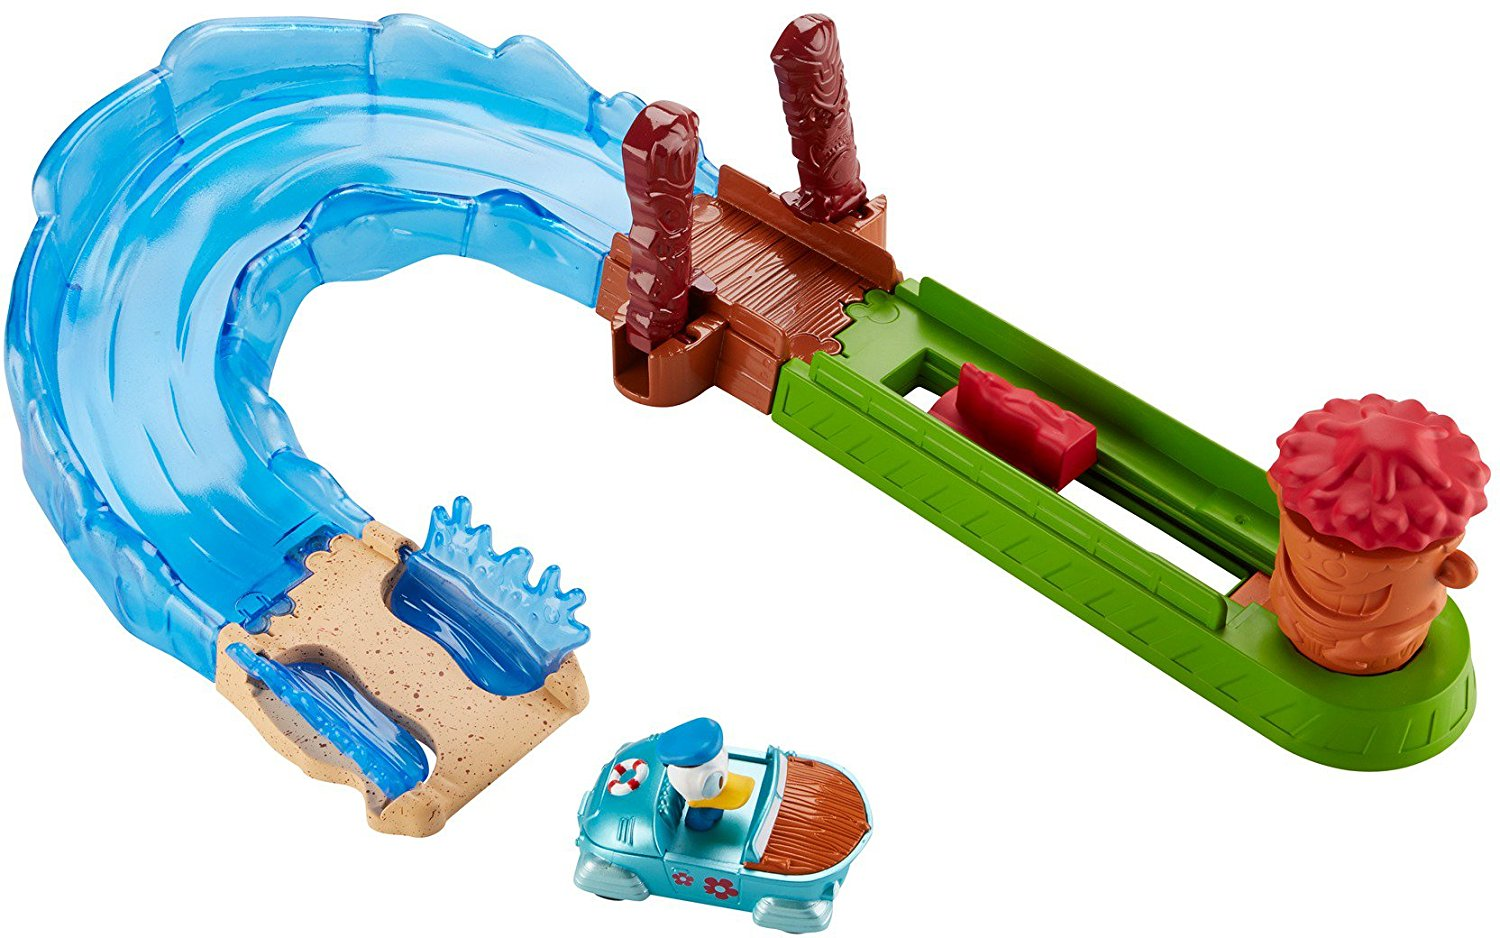 Fisher Price Disney Mickey Mouse Clubhouse Wave Rider Race Set Toy, Track sets connect... by